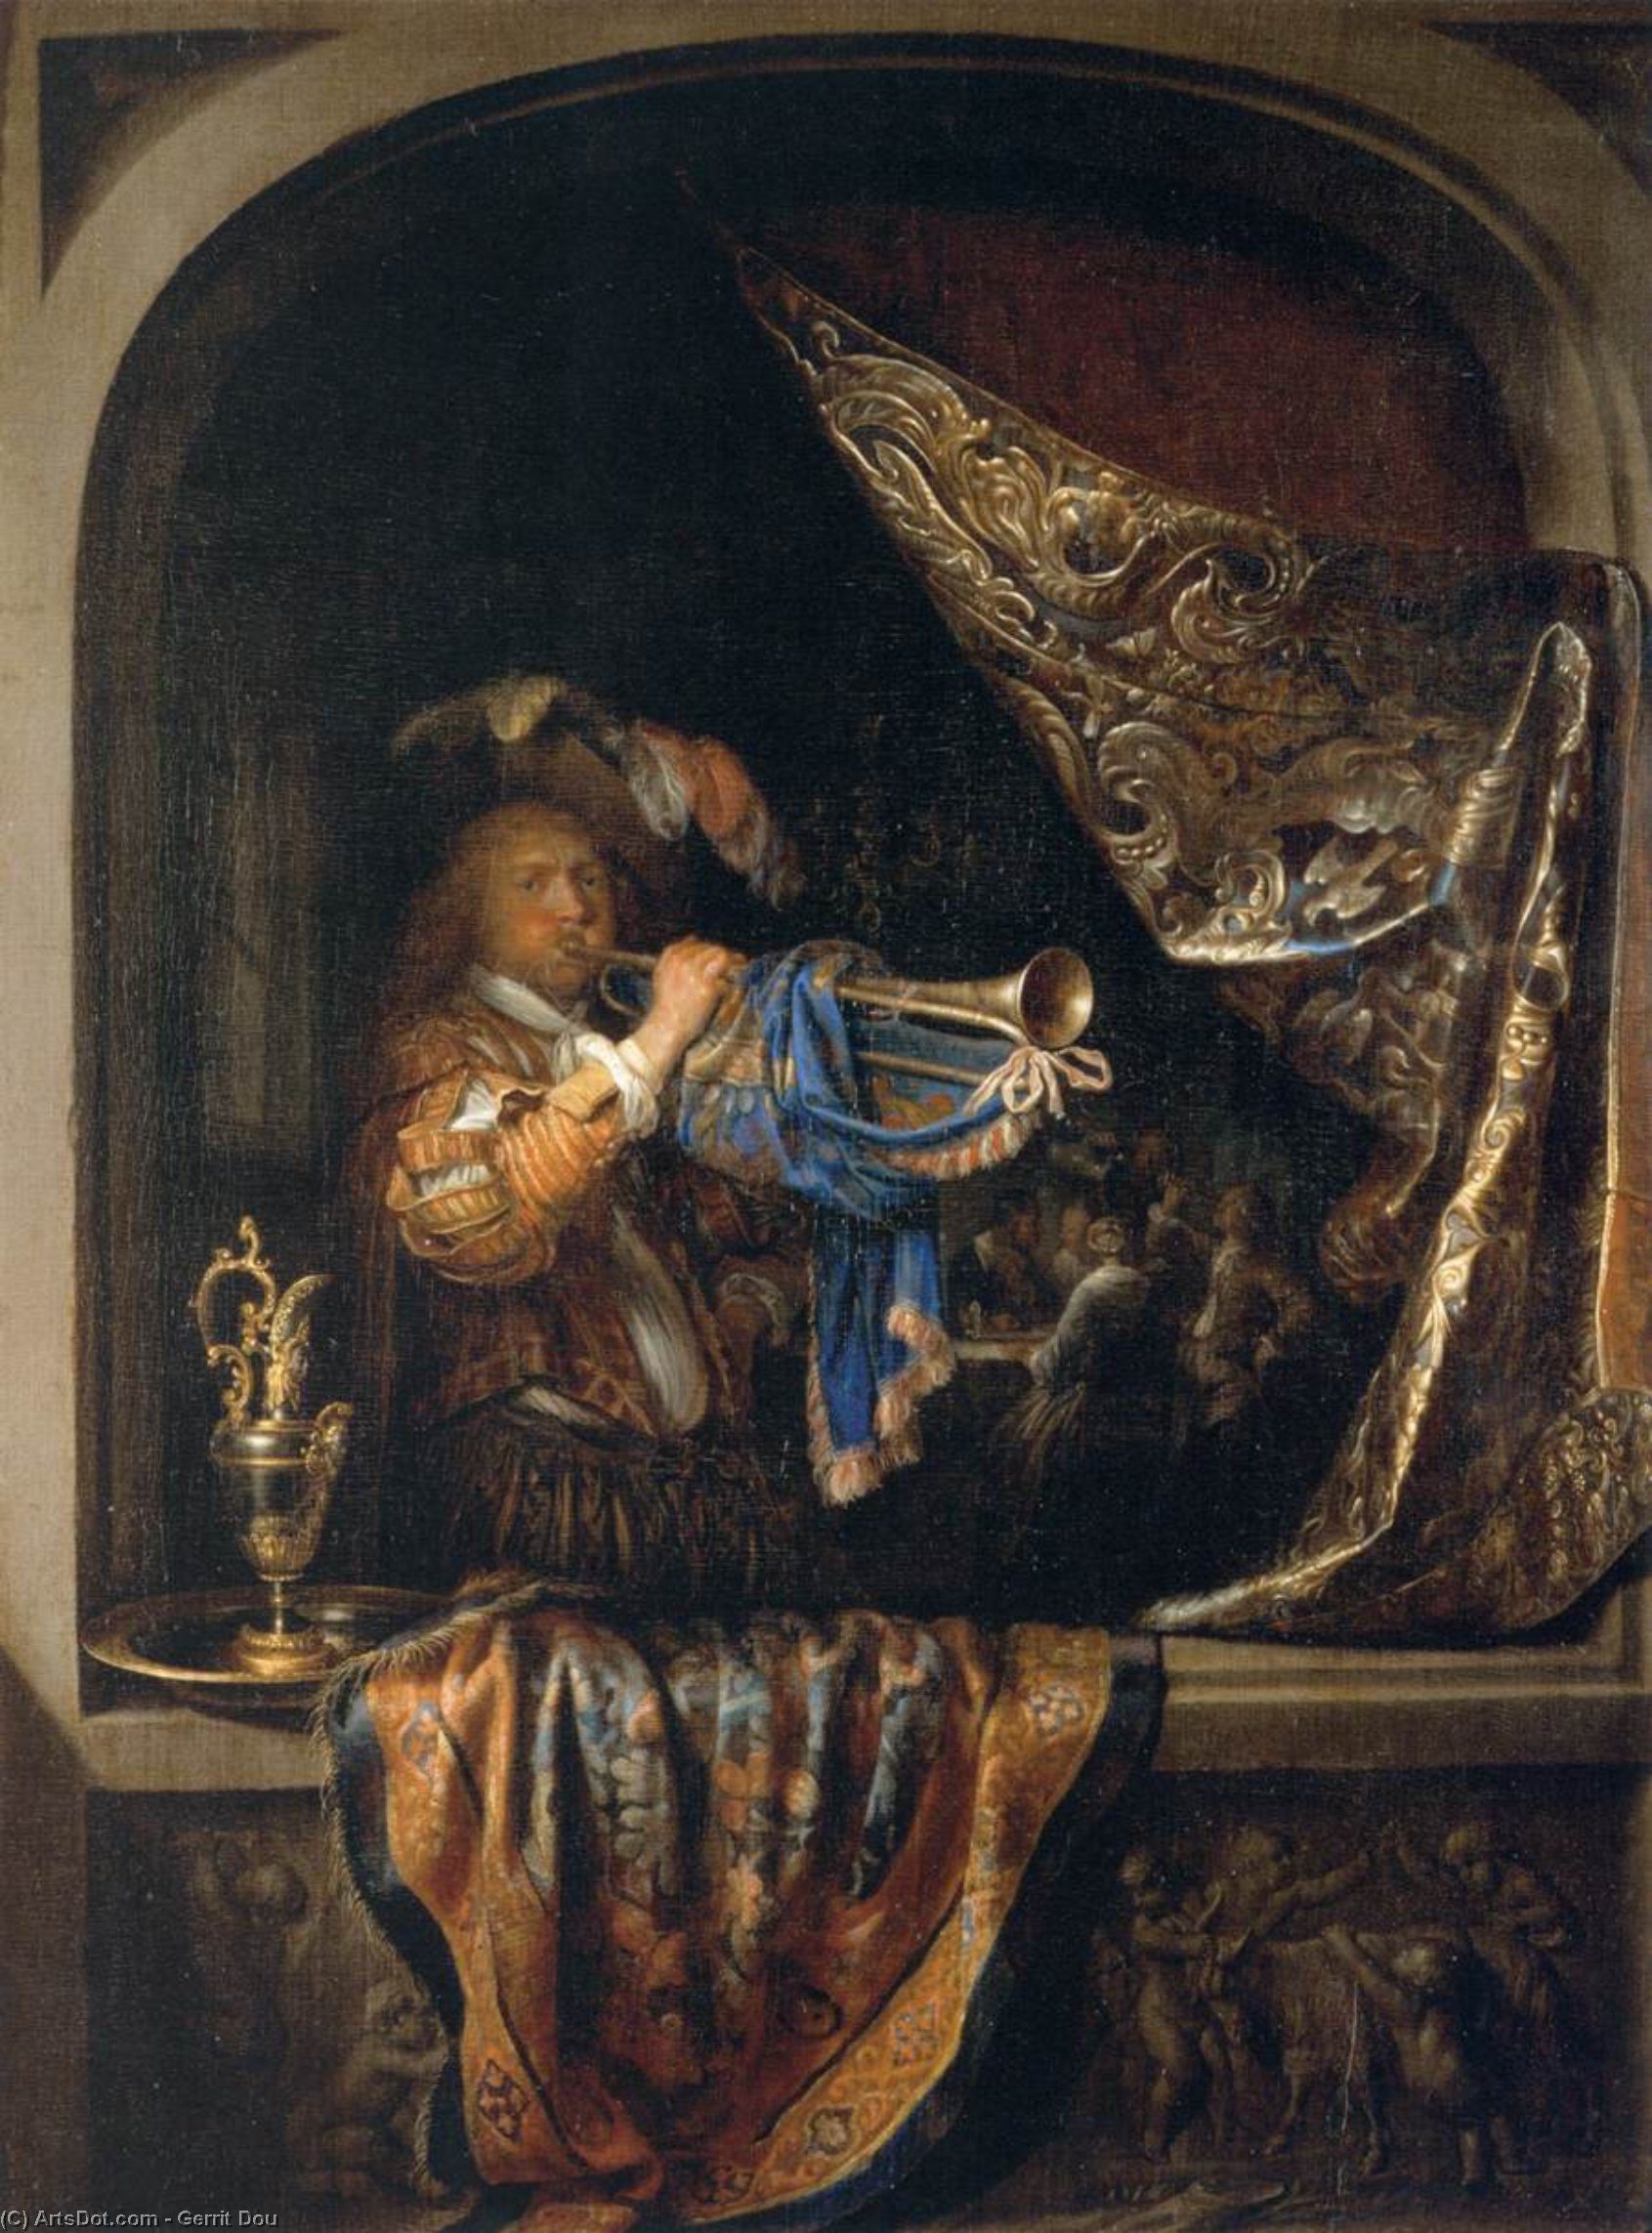 Trumpet-Player in front of a Banquet, Oil by Gerrit (Gérard) Dou (1613-1675, Netherlands)